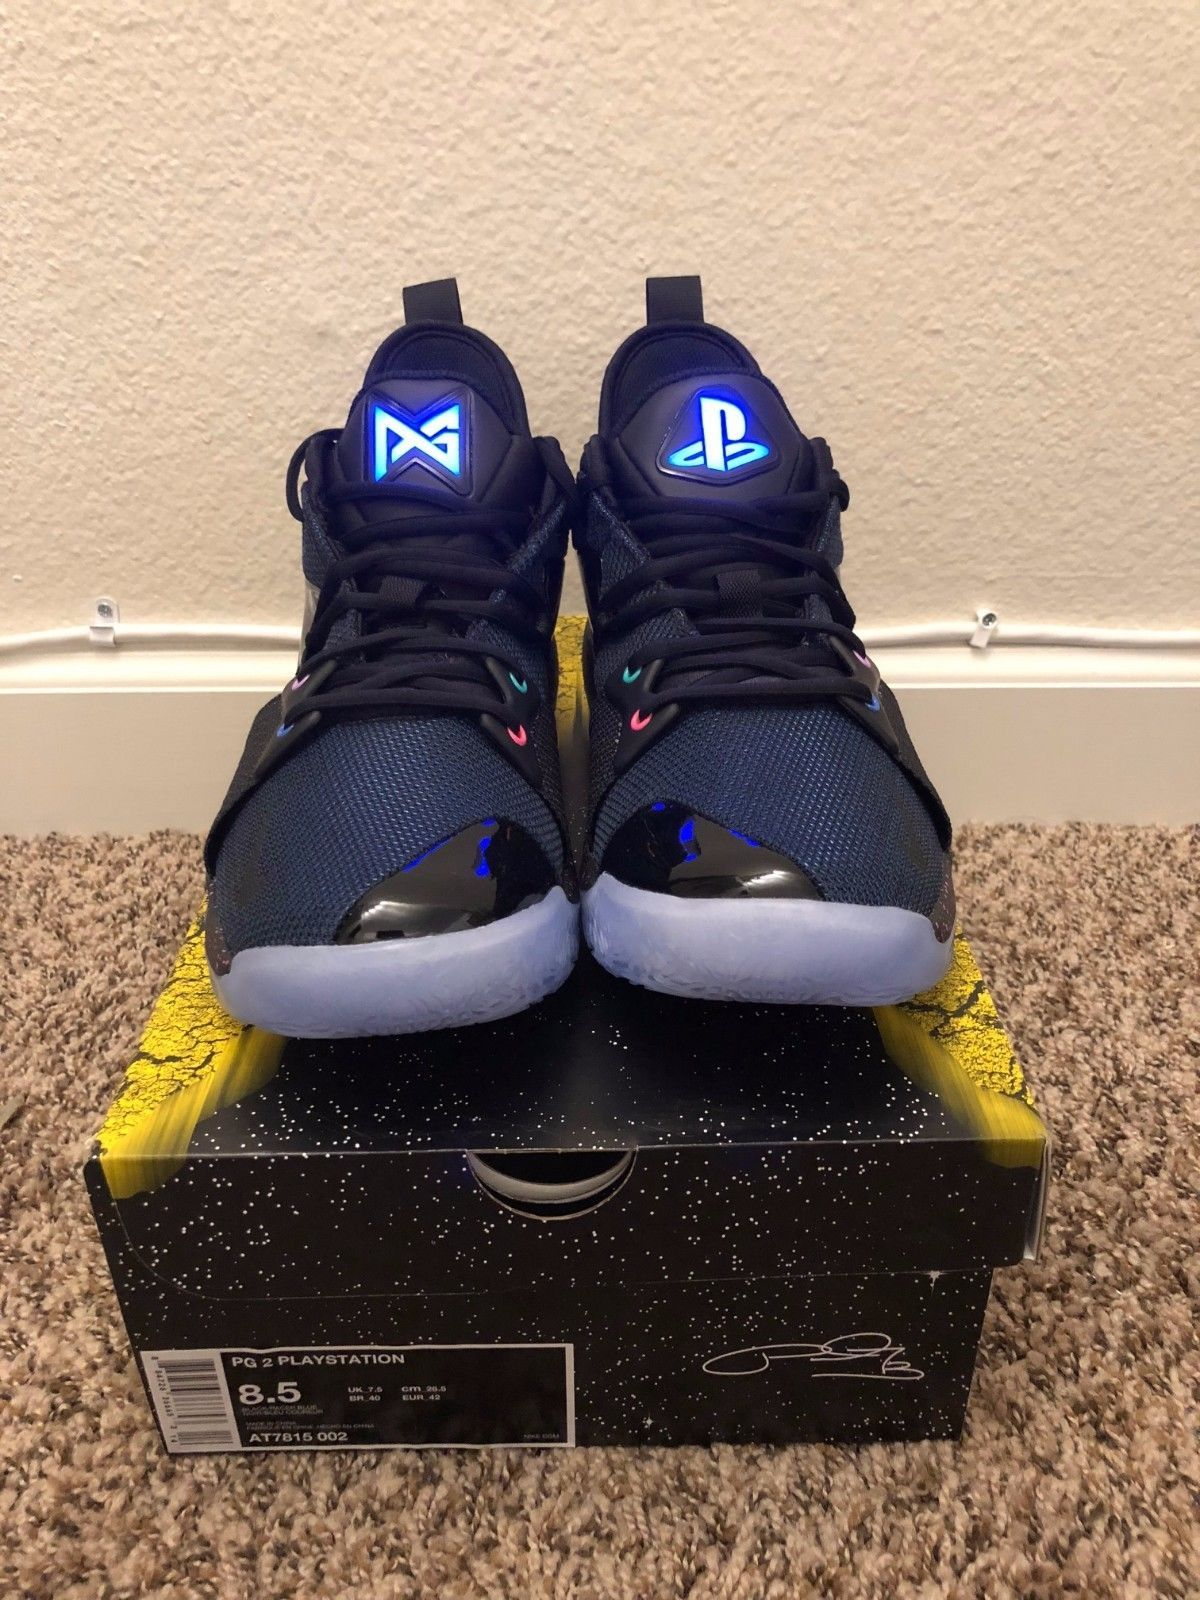 cheaper 1a8fd 8fa25 Nike PG2 Paul George PS4 PlayStationÂSize 8.5 Limited ...